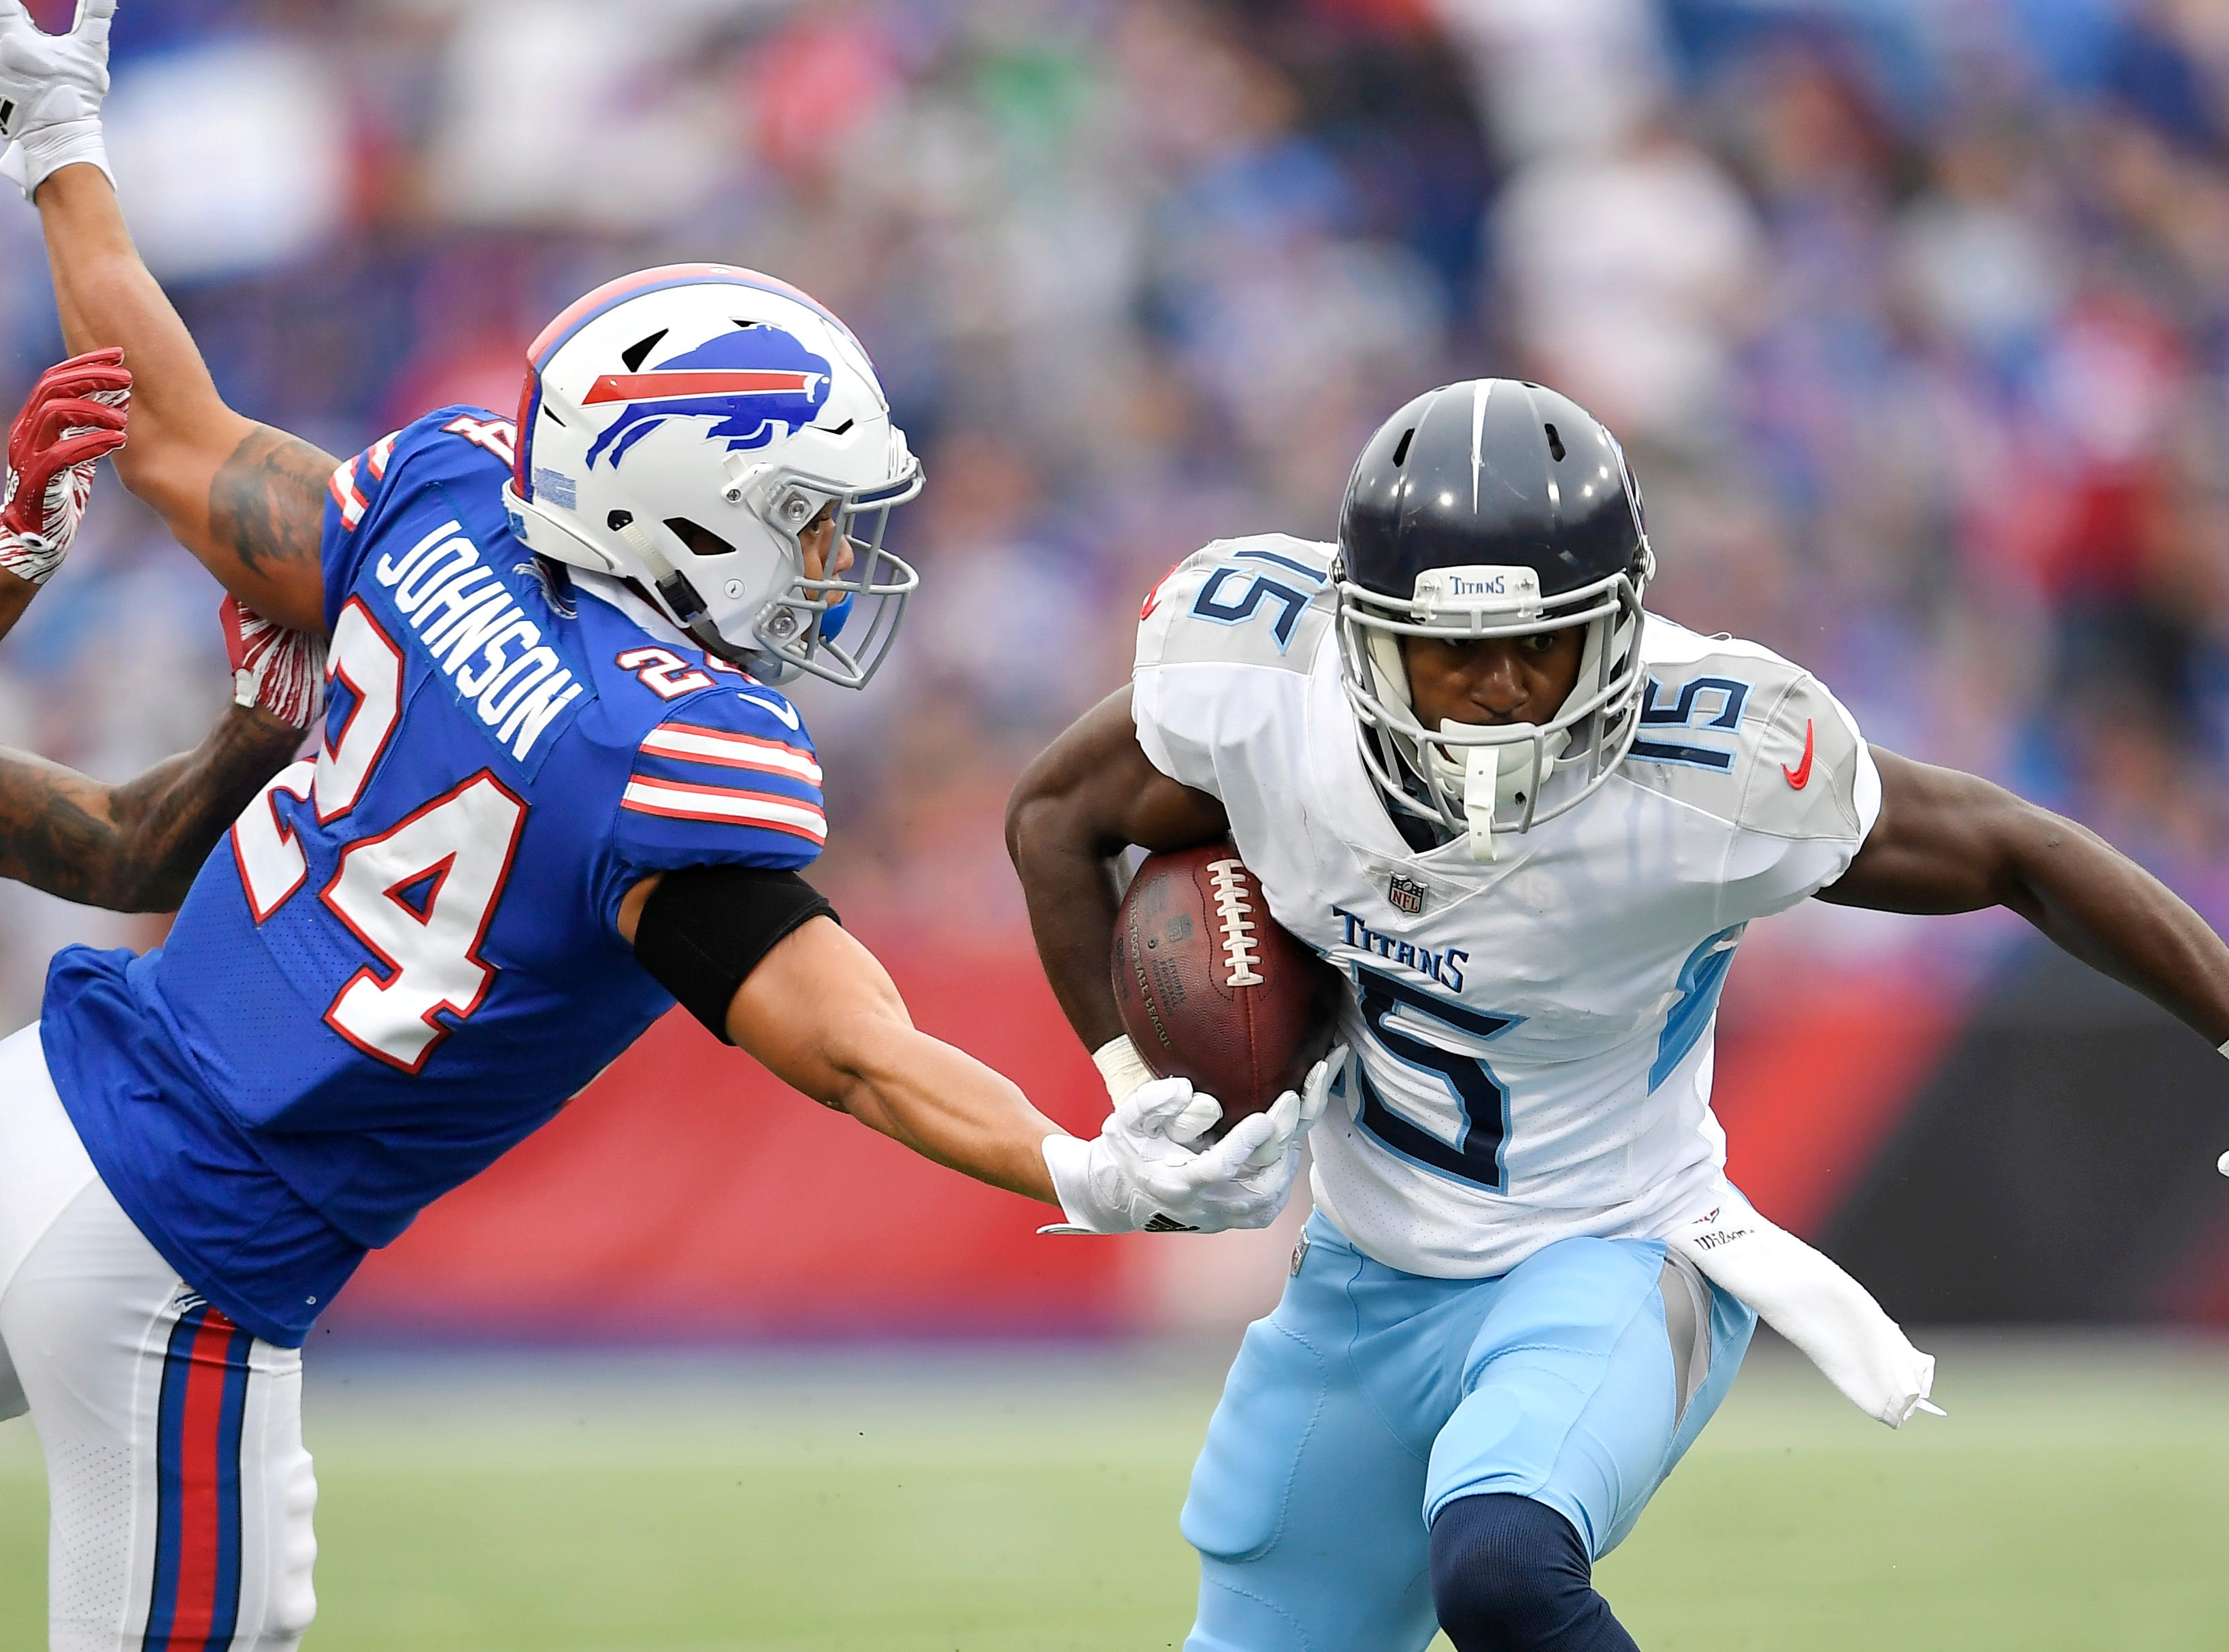 Tennessee Titans wide receiver Darius Jennings (15) runs for yardage as Buffalo Bills cornerback Taron Johnson (24) tries to bring him down during the second half of an NFL football game, Sunday, Oct. 7, 2018, in Orchard Park, N.Y. (AP Photo/Adrian Kraus)